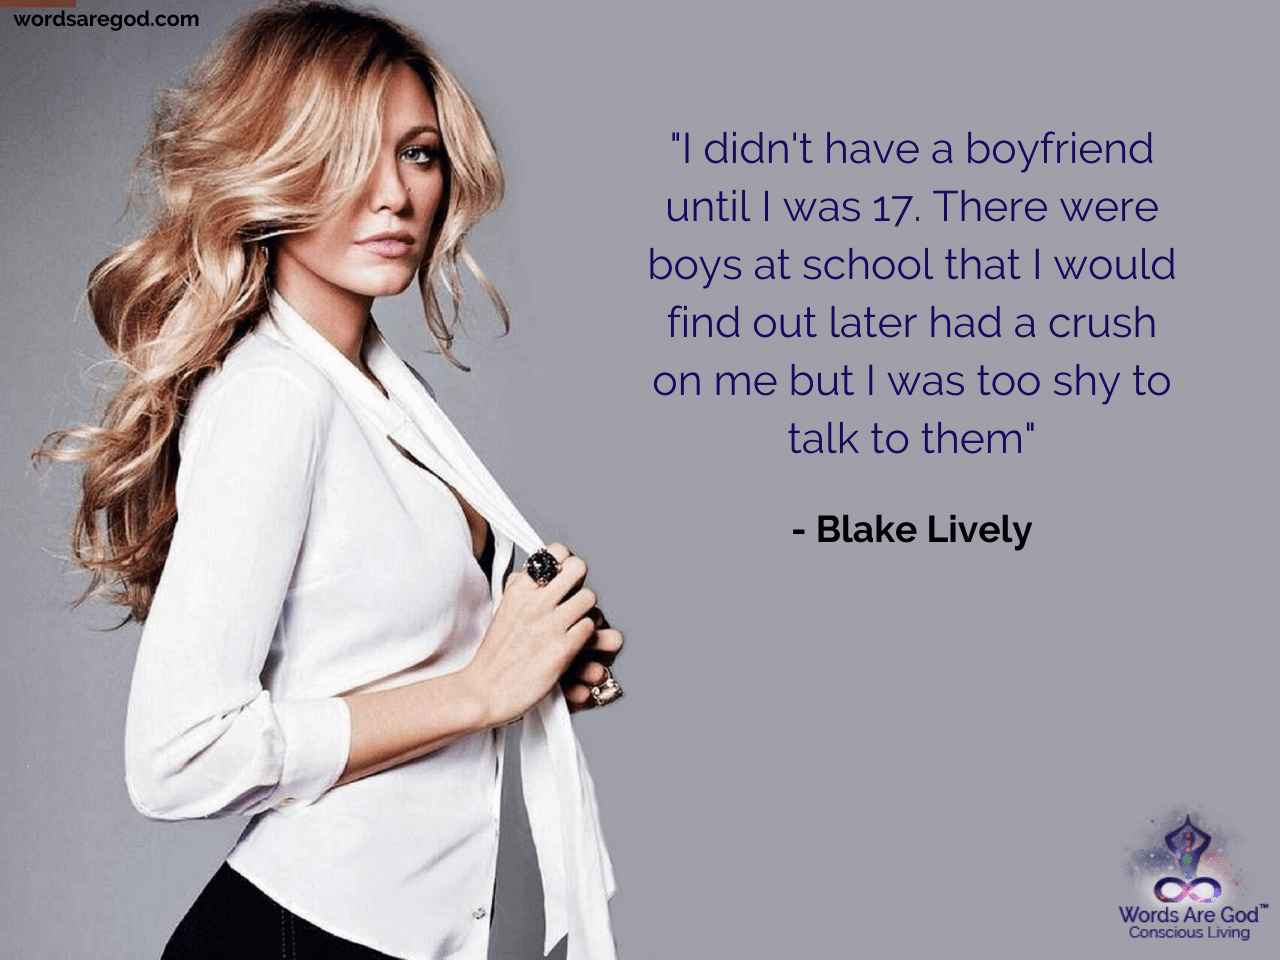 Blake Lively Motivational Quote by Blake Lively